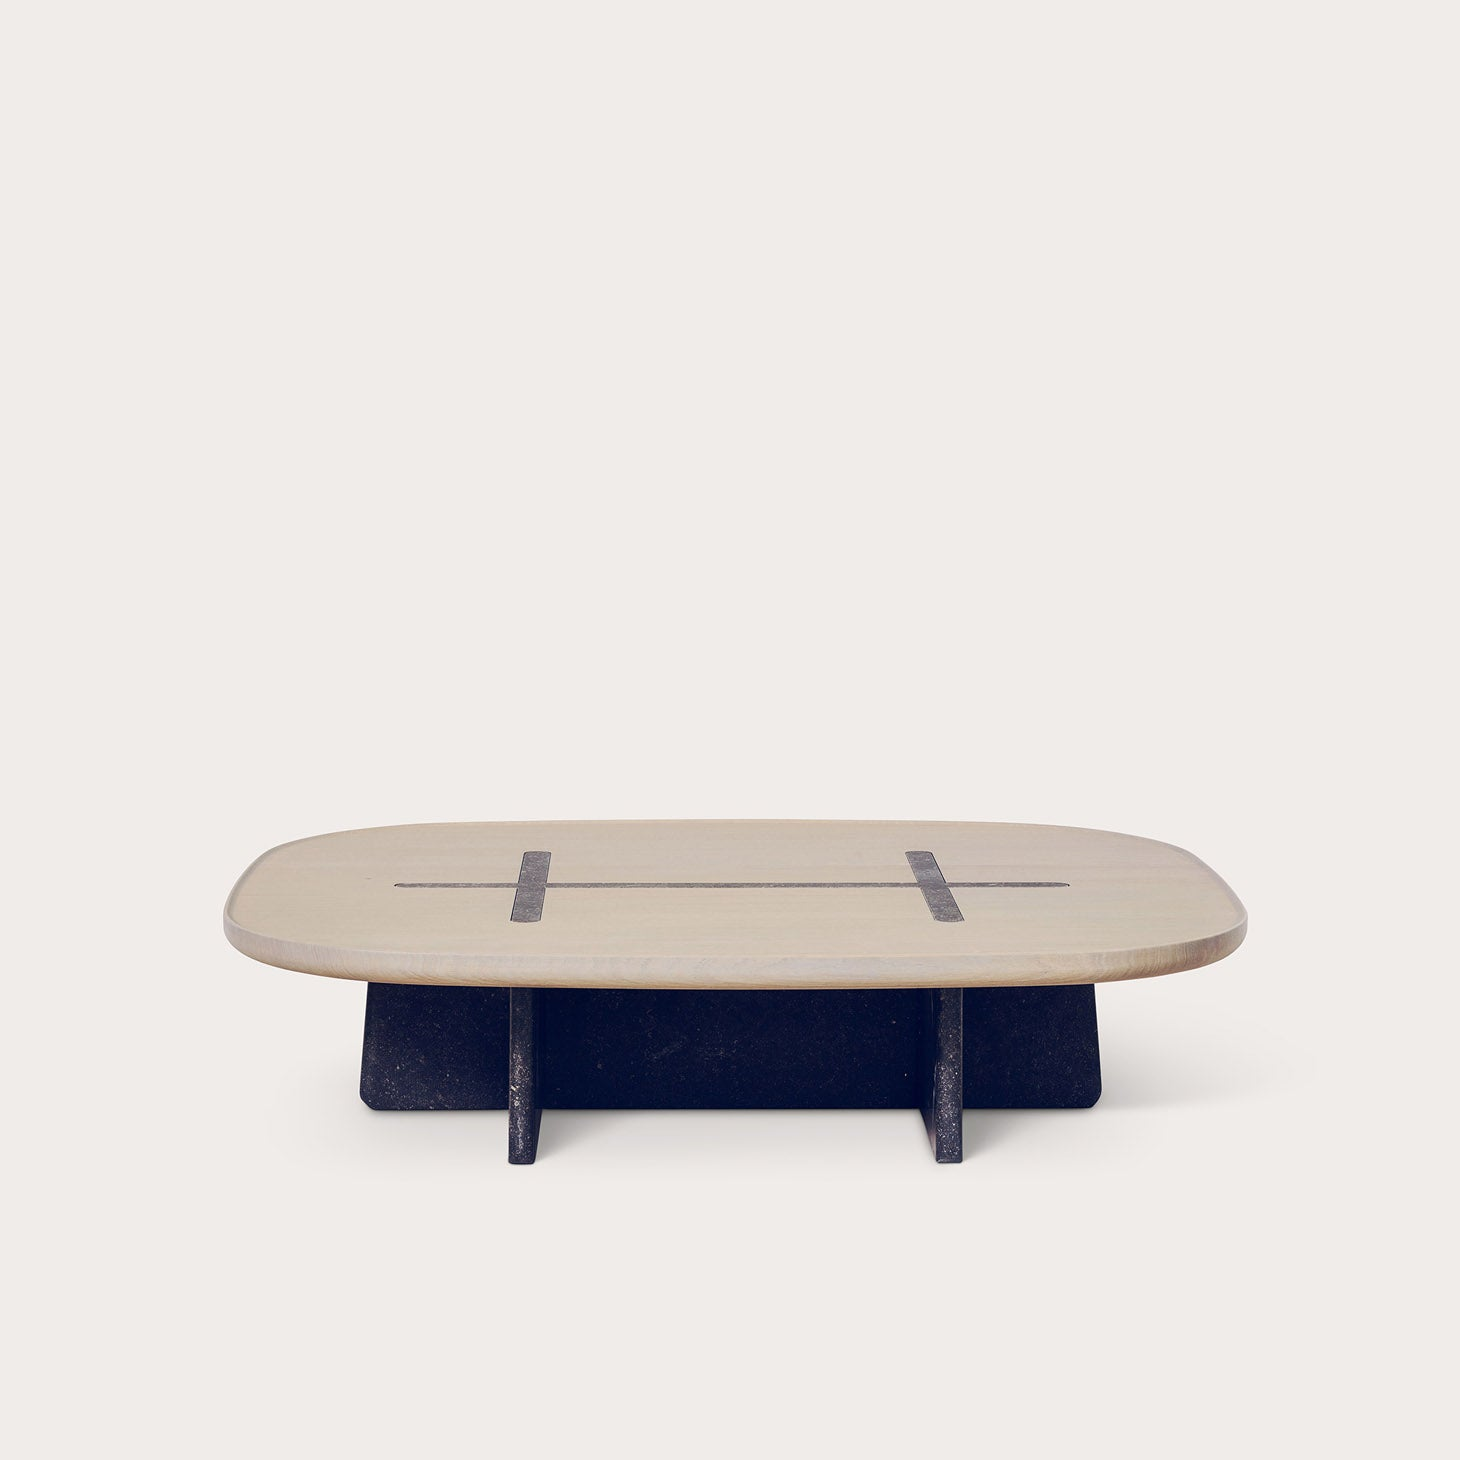 Bleecker Street Tables Sebastian Herkner Designer Furniture Sku: 416-230-10073